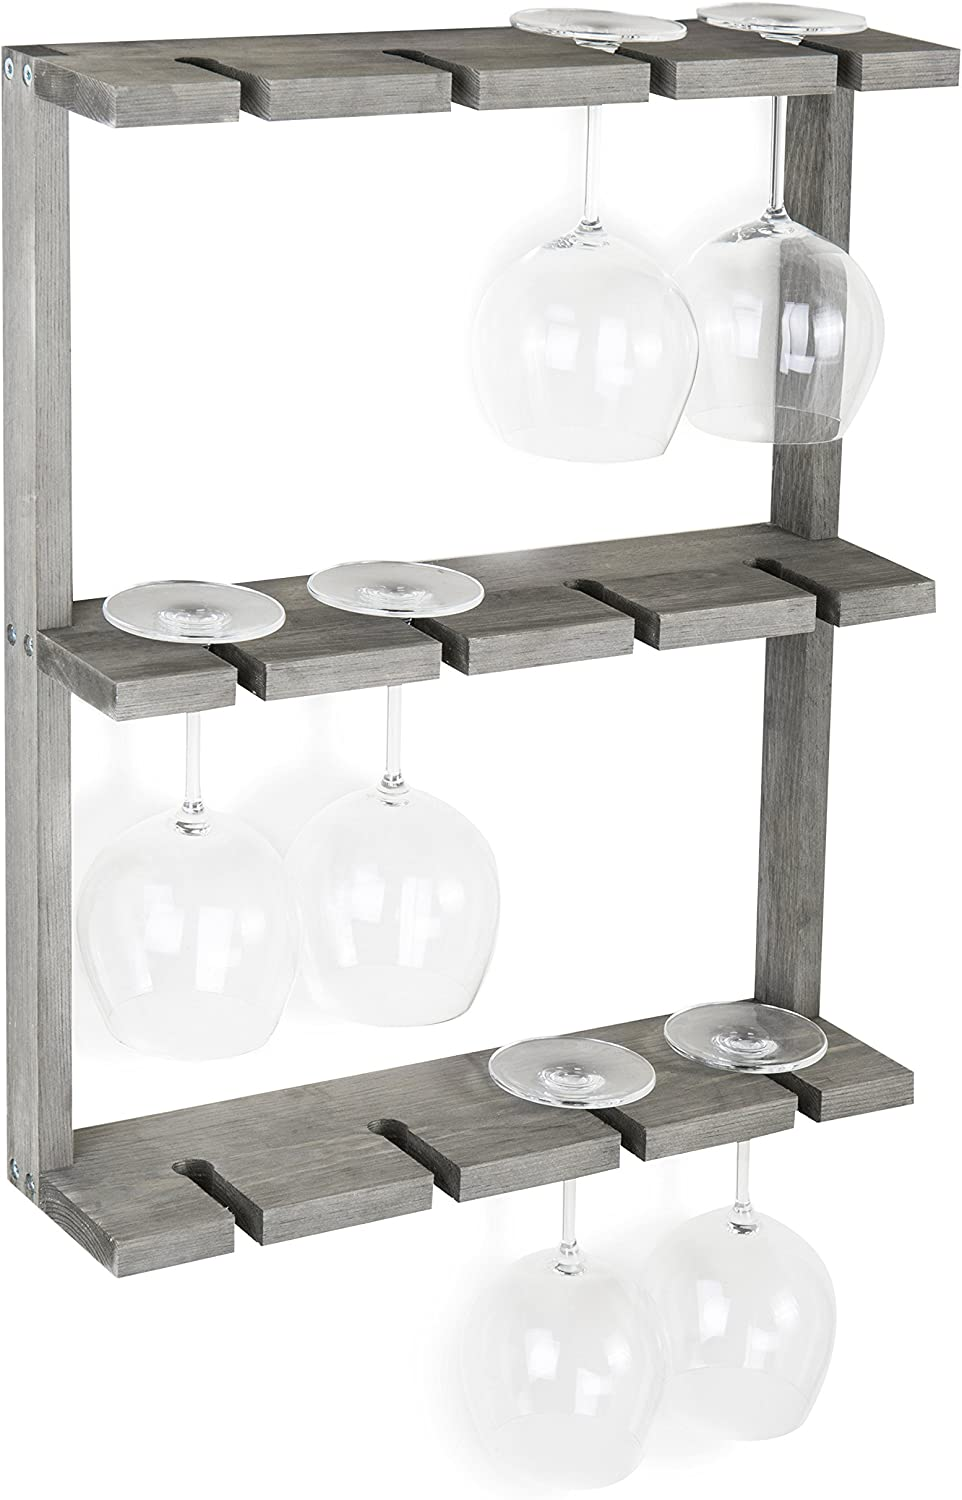 MyGift Vintage Super beauty product restock quality top Gray Wood Wall-Mounted Holder Spring new work one after another Rack Glass 12 Wine